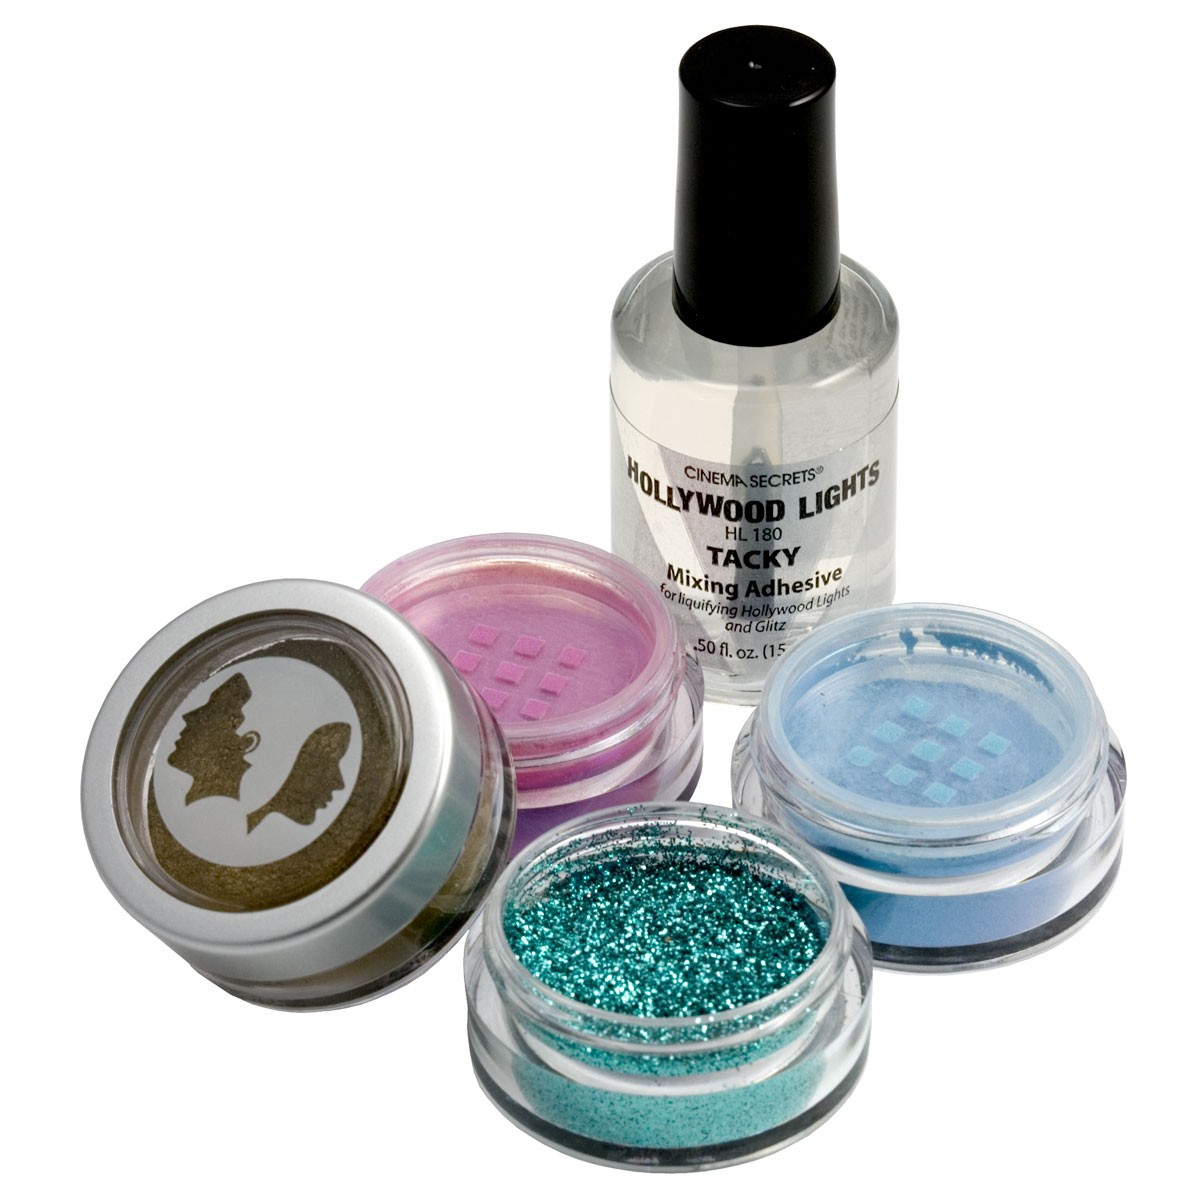 HOLLYWOOD LIGHTS TACKY 15 ml